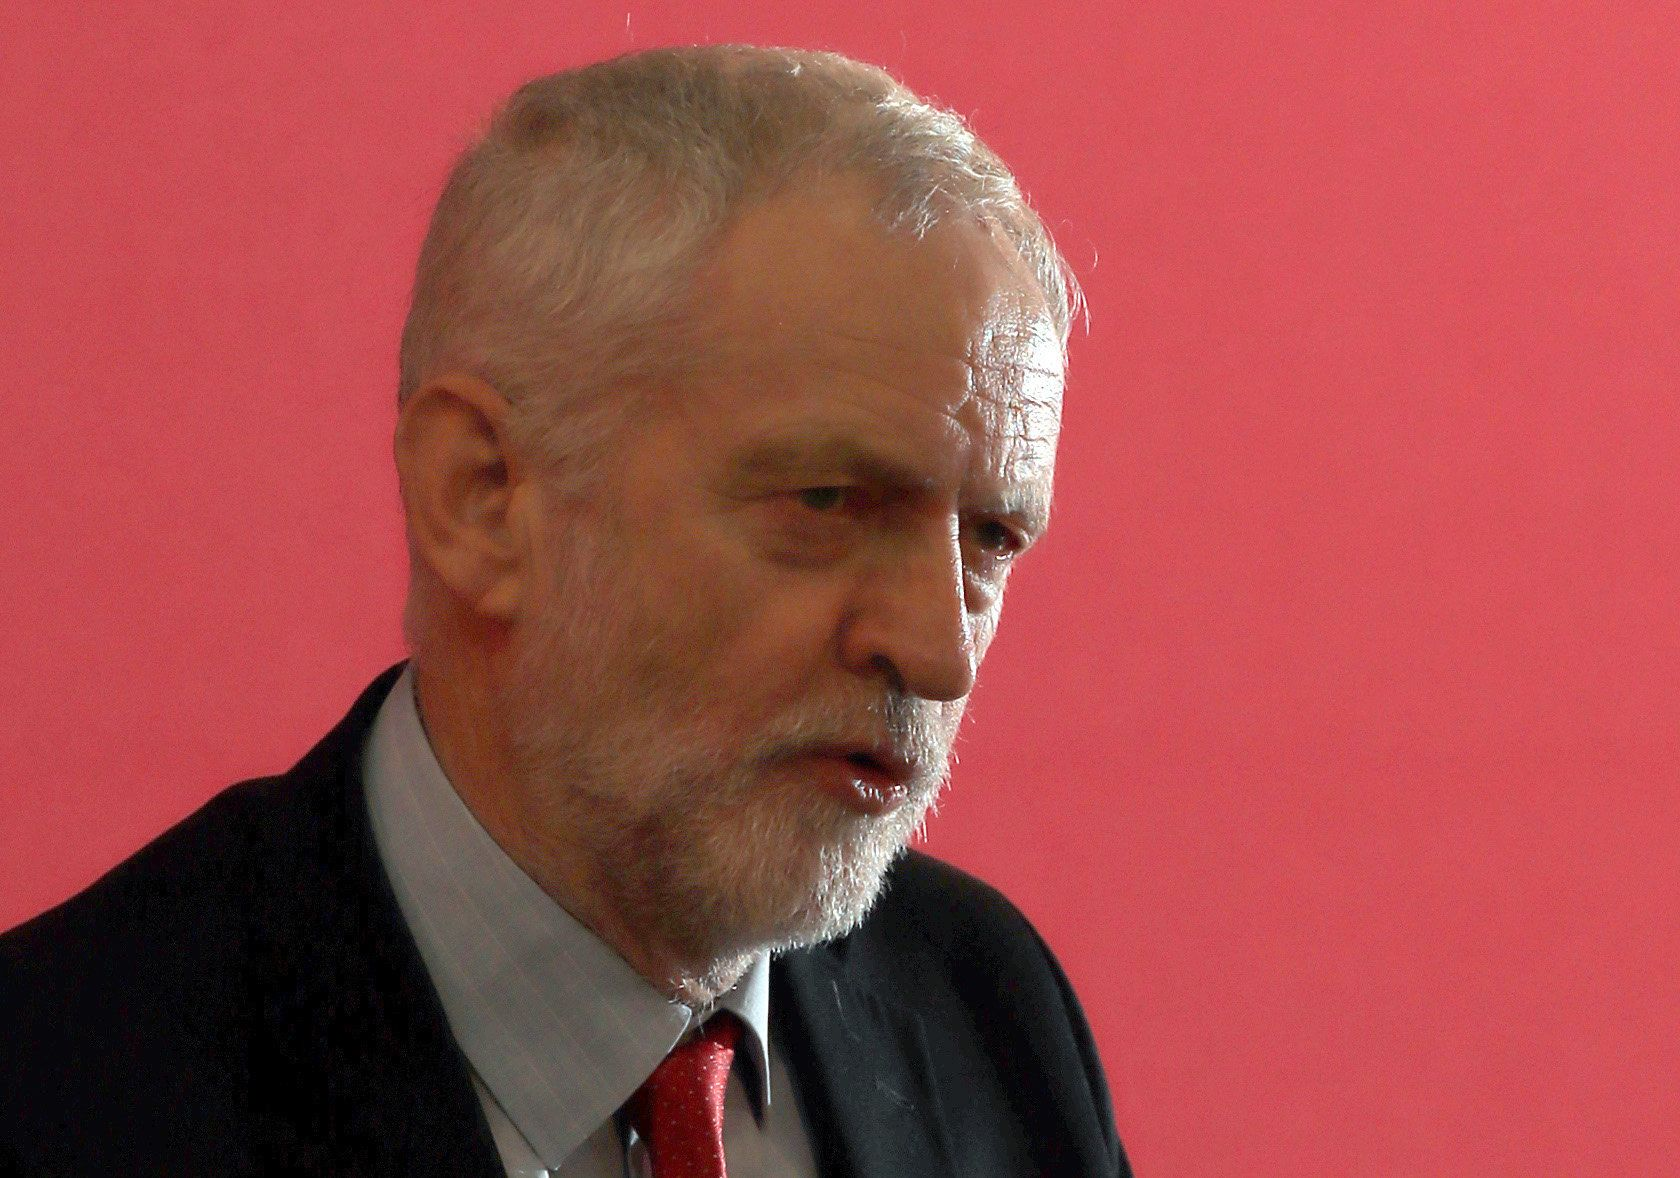 Anti-Semitism row being used to attack Corbyn, says Labour frontbencher